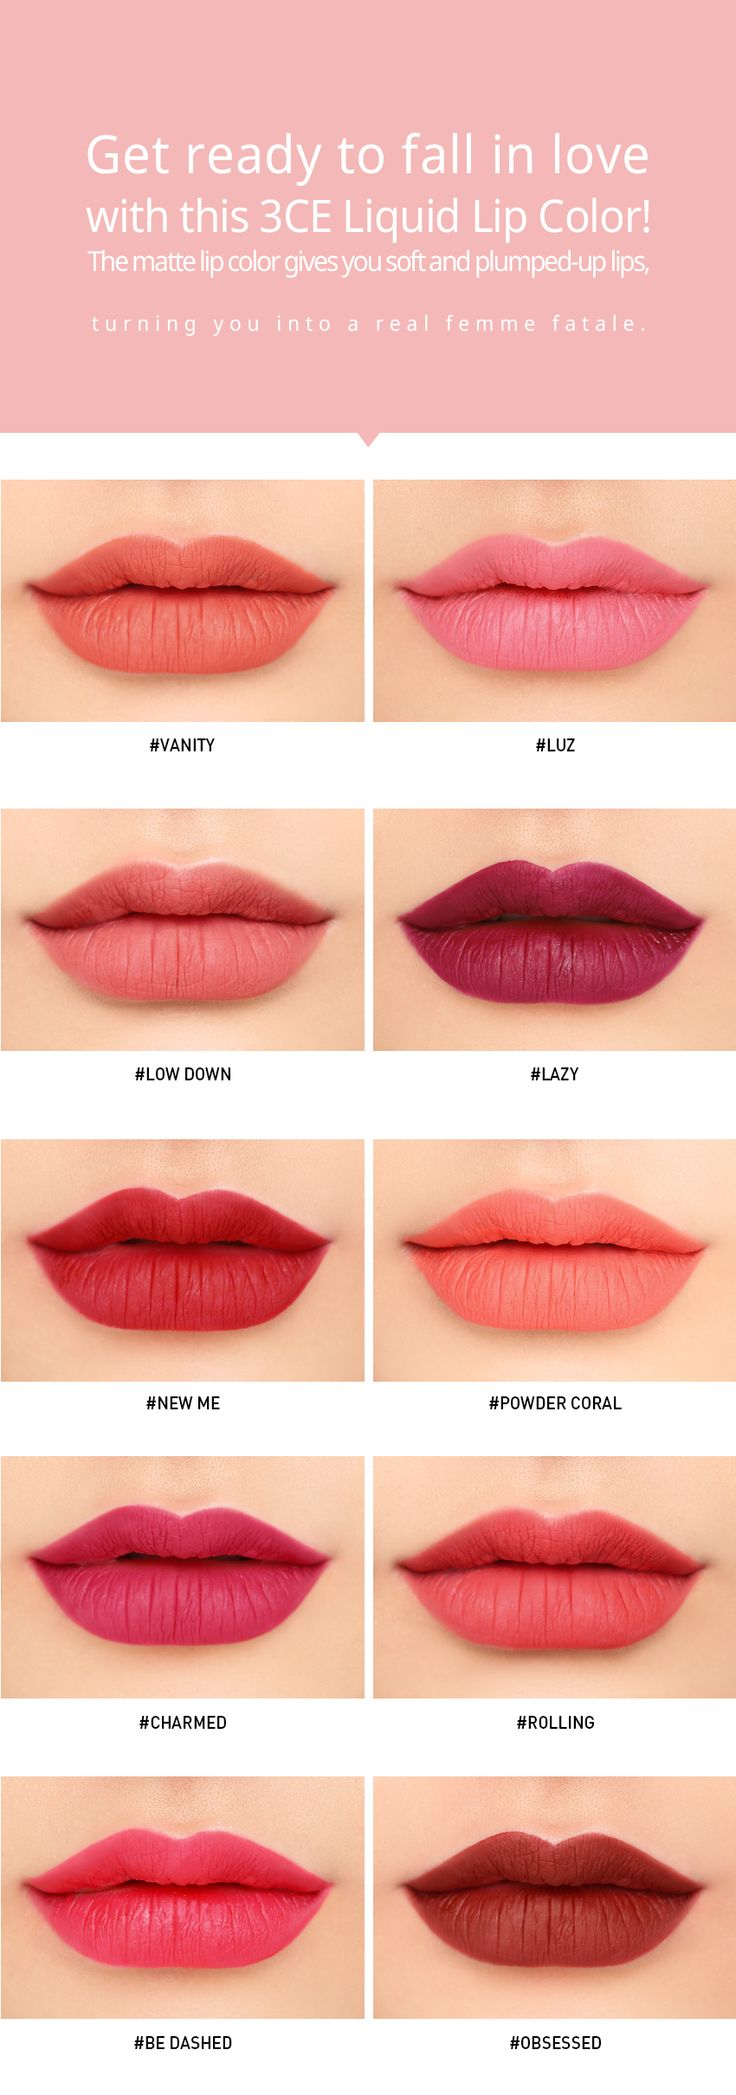 3Ce Liquid Lip Color Obsessed  Stylenanda  Beauty Eyes -9239